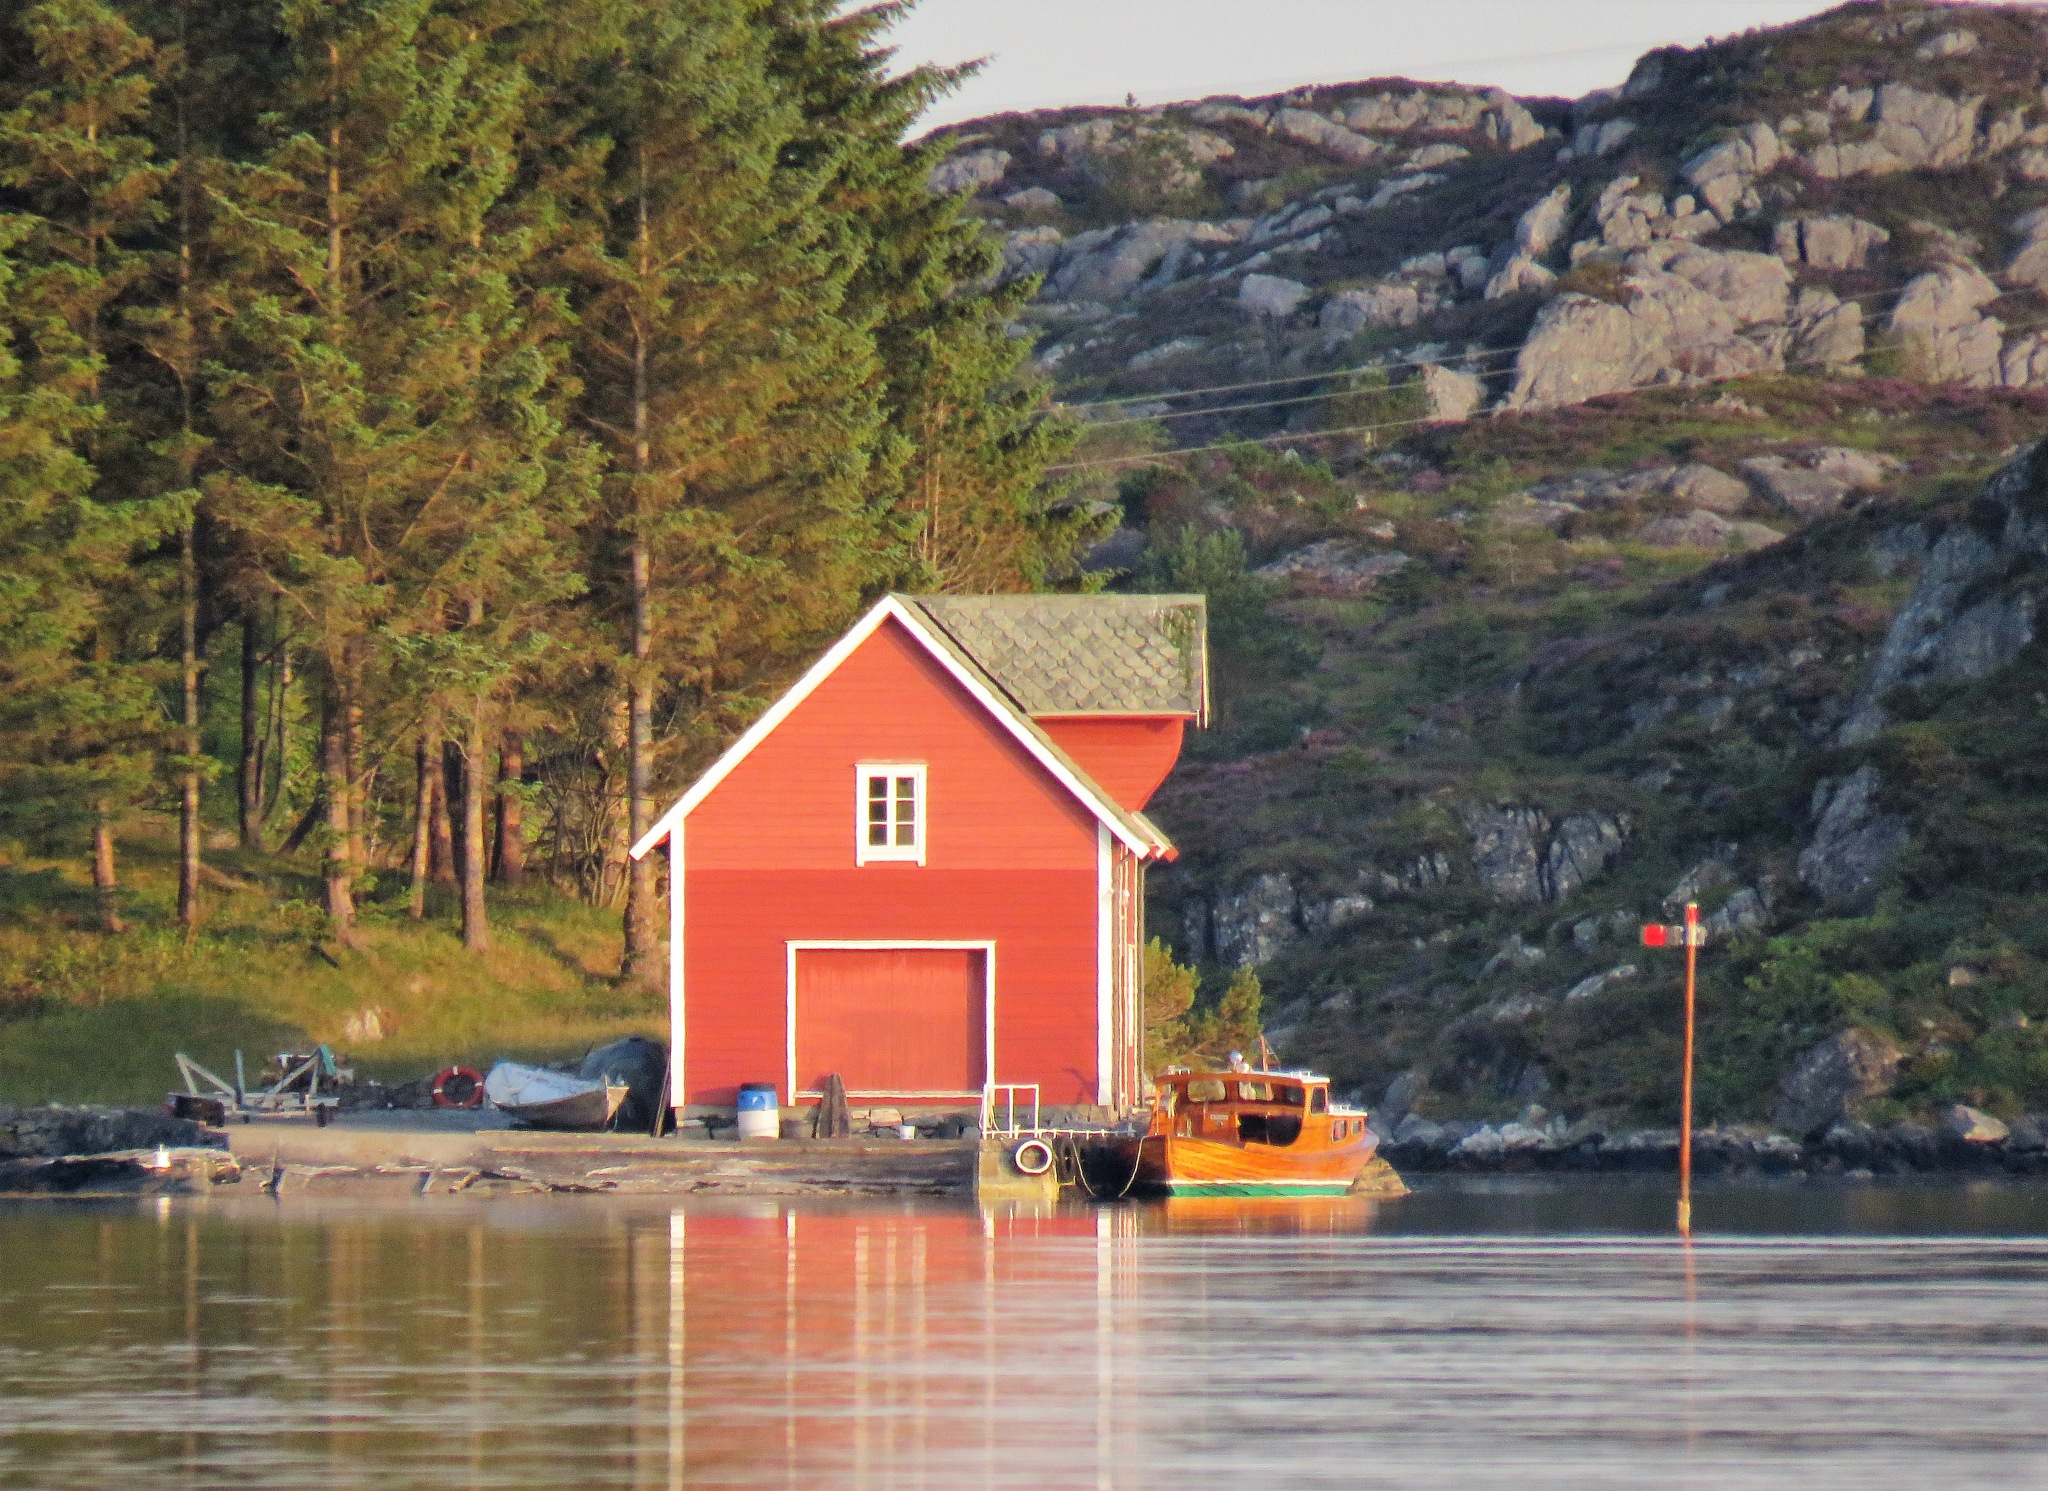 #Boathouse by marit